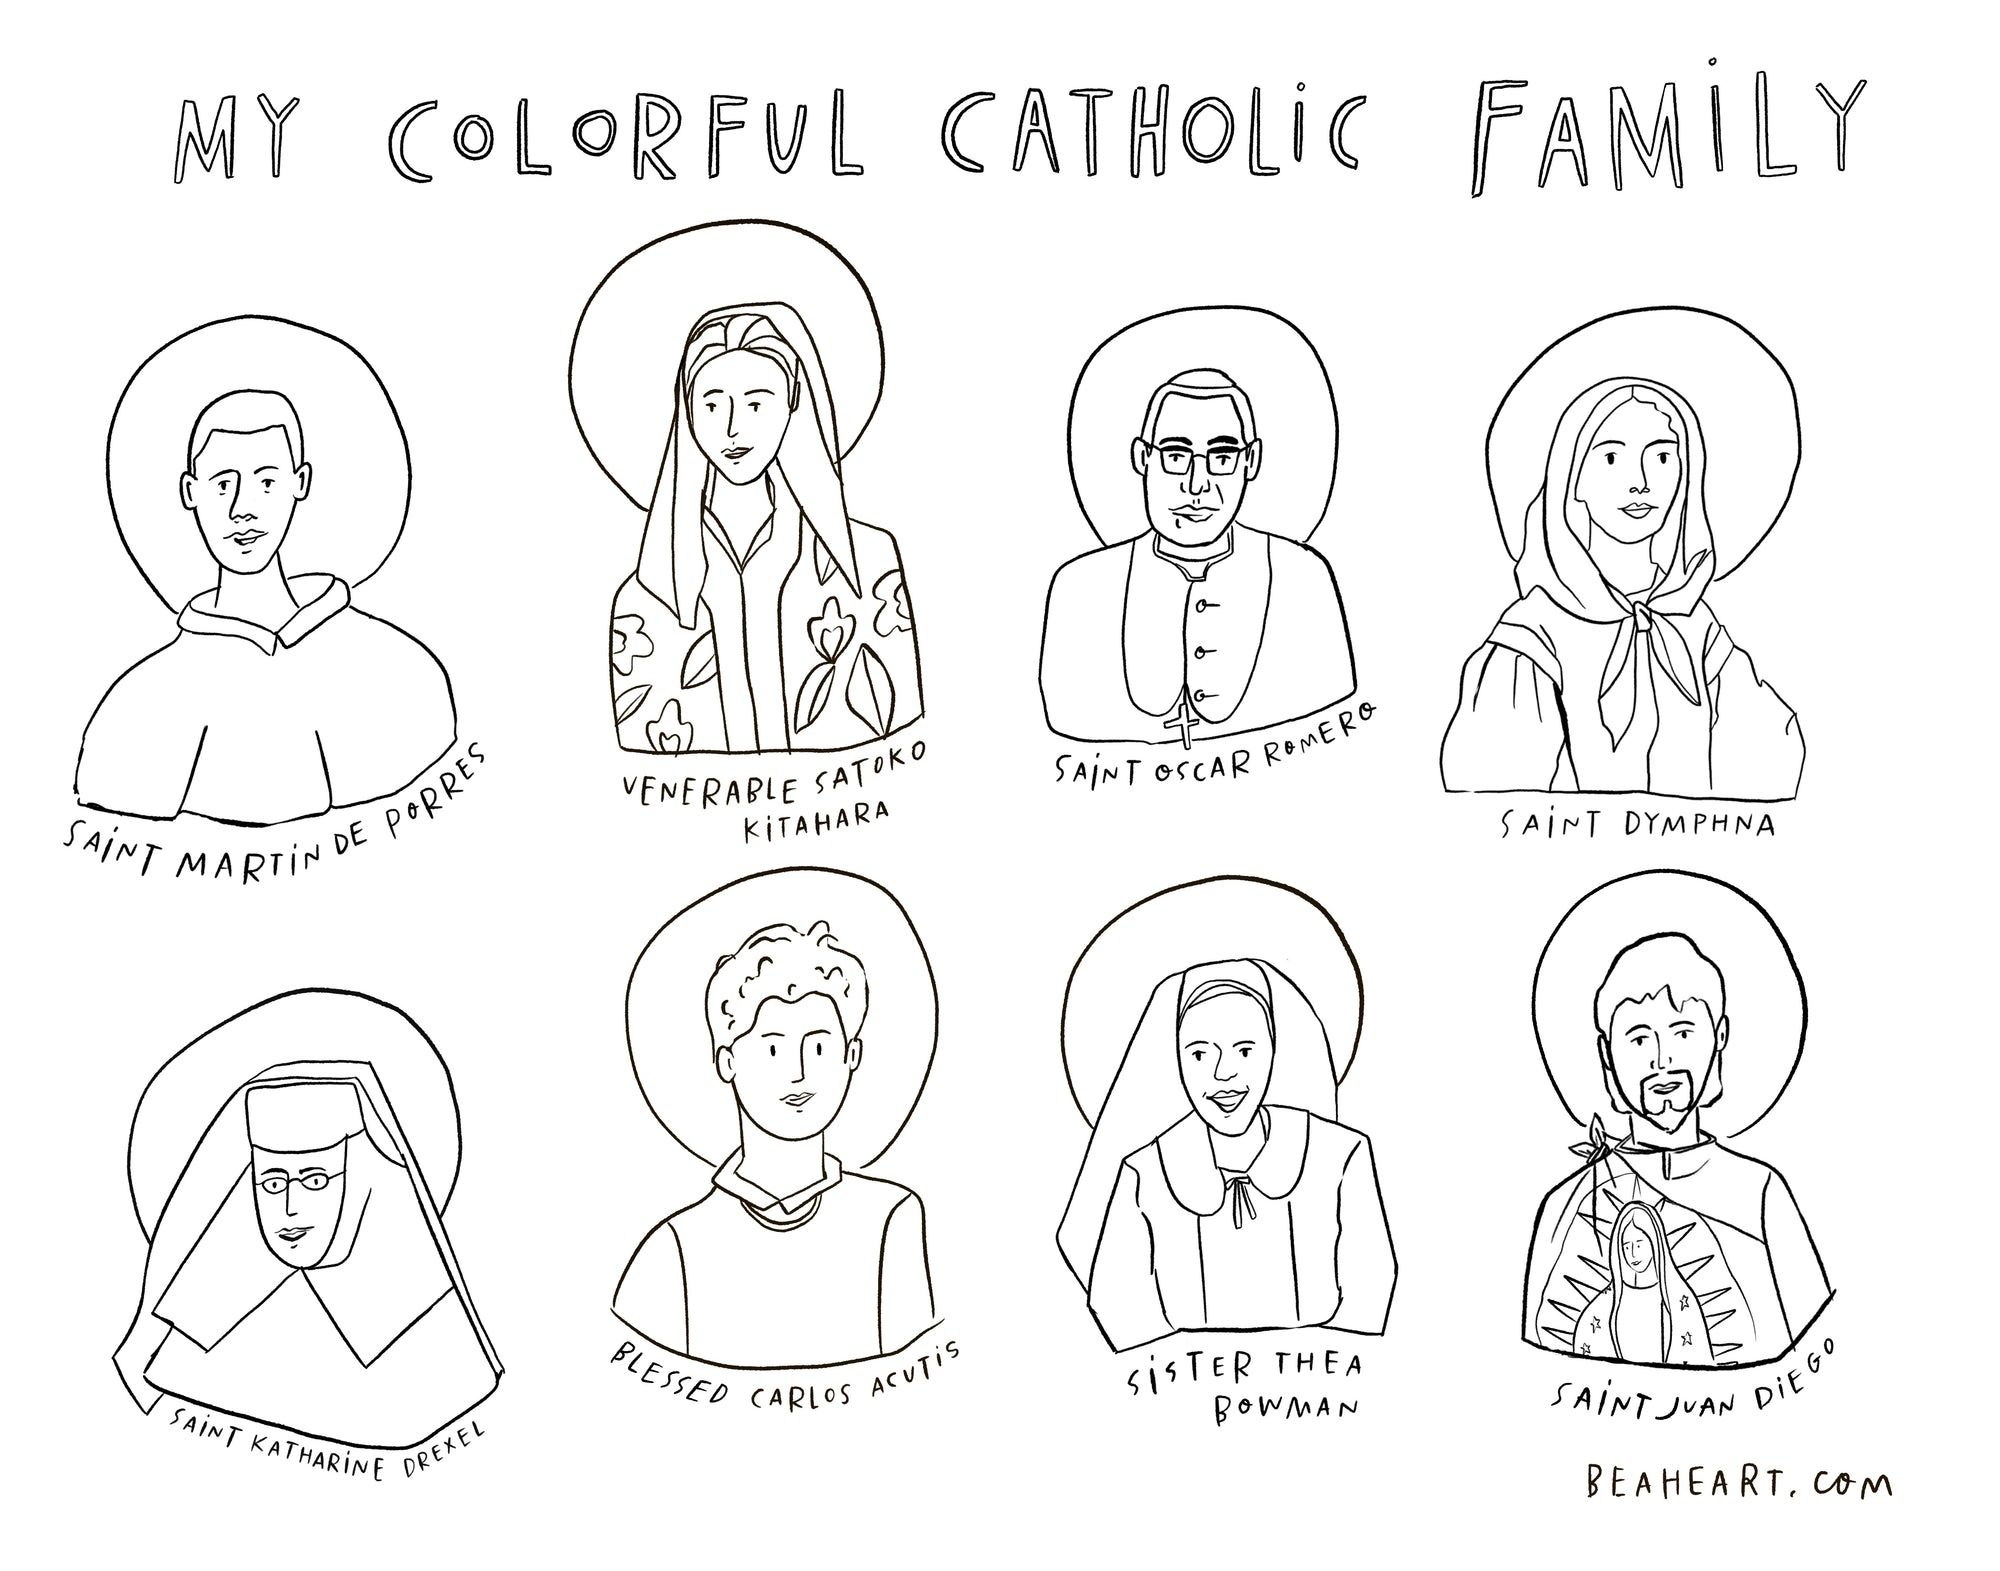 Be A Heart My Colorful Catholic Family Placemat